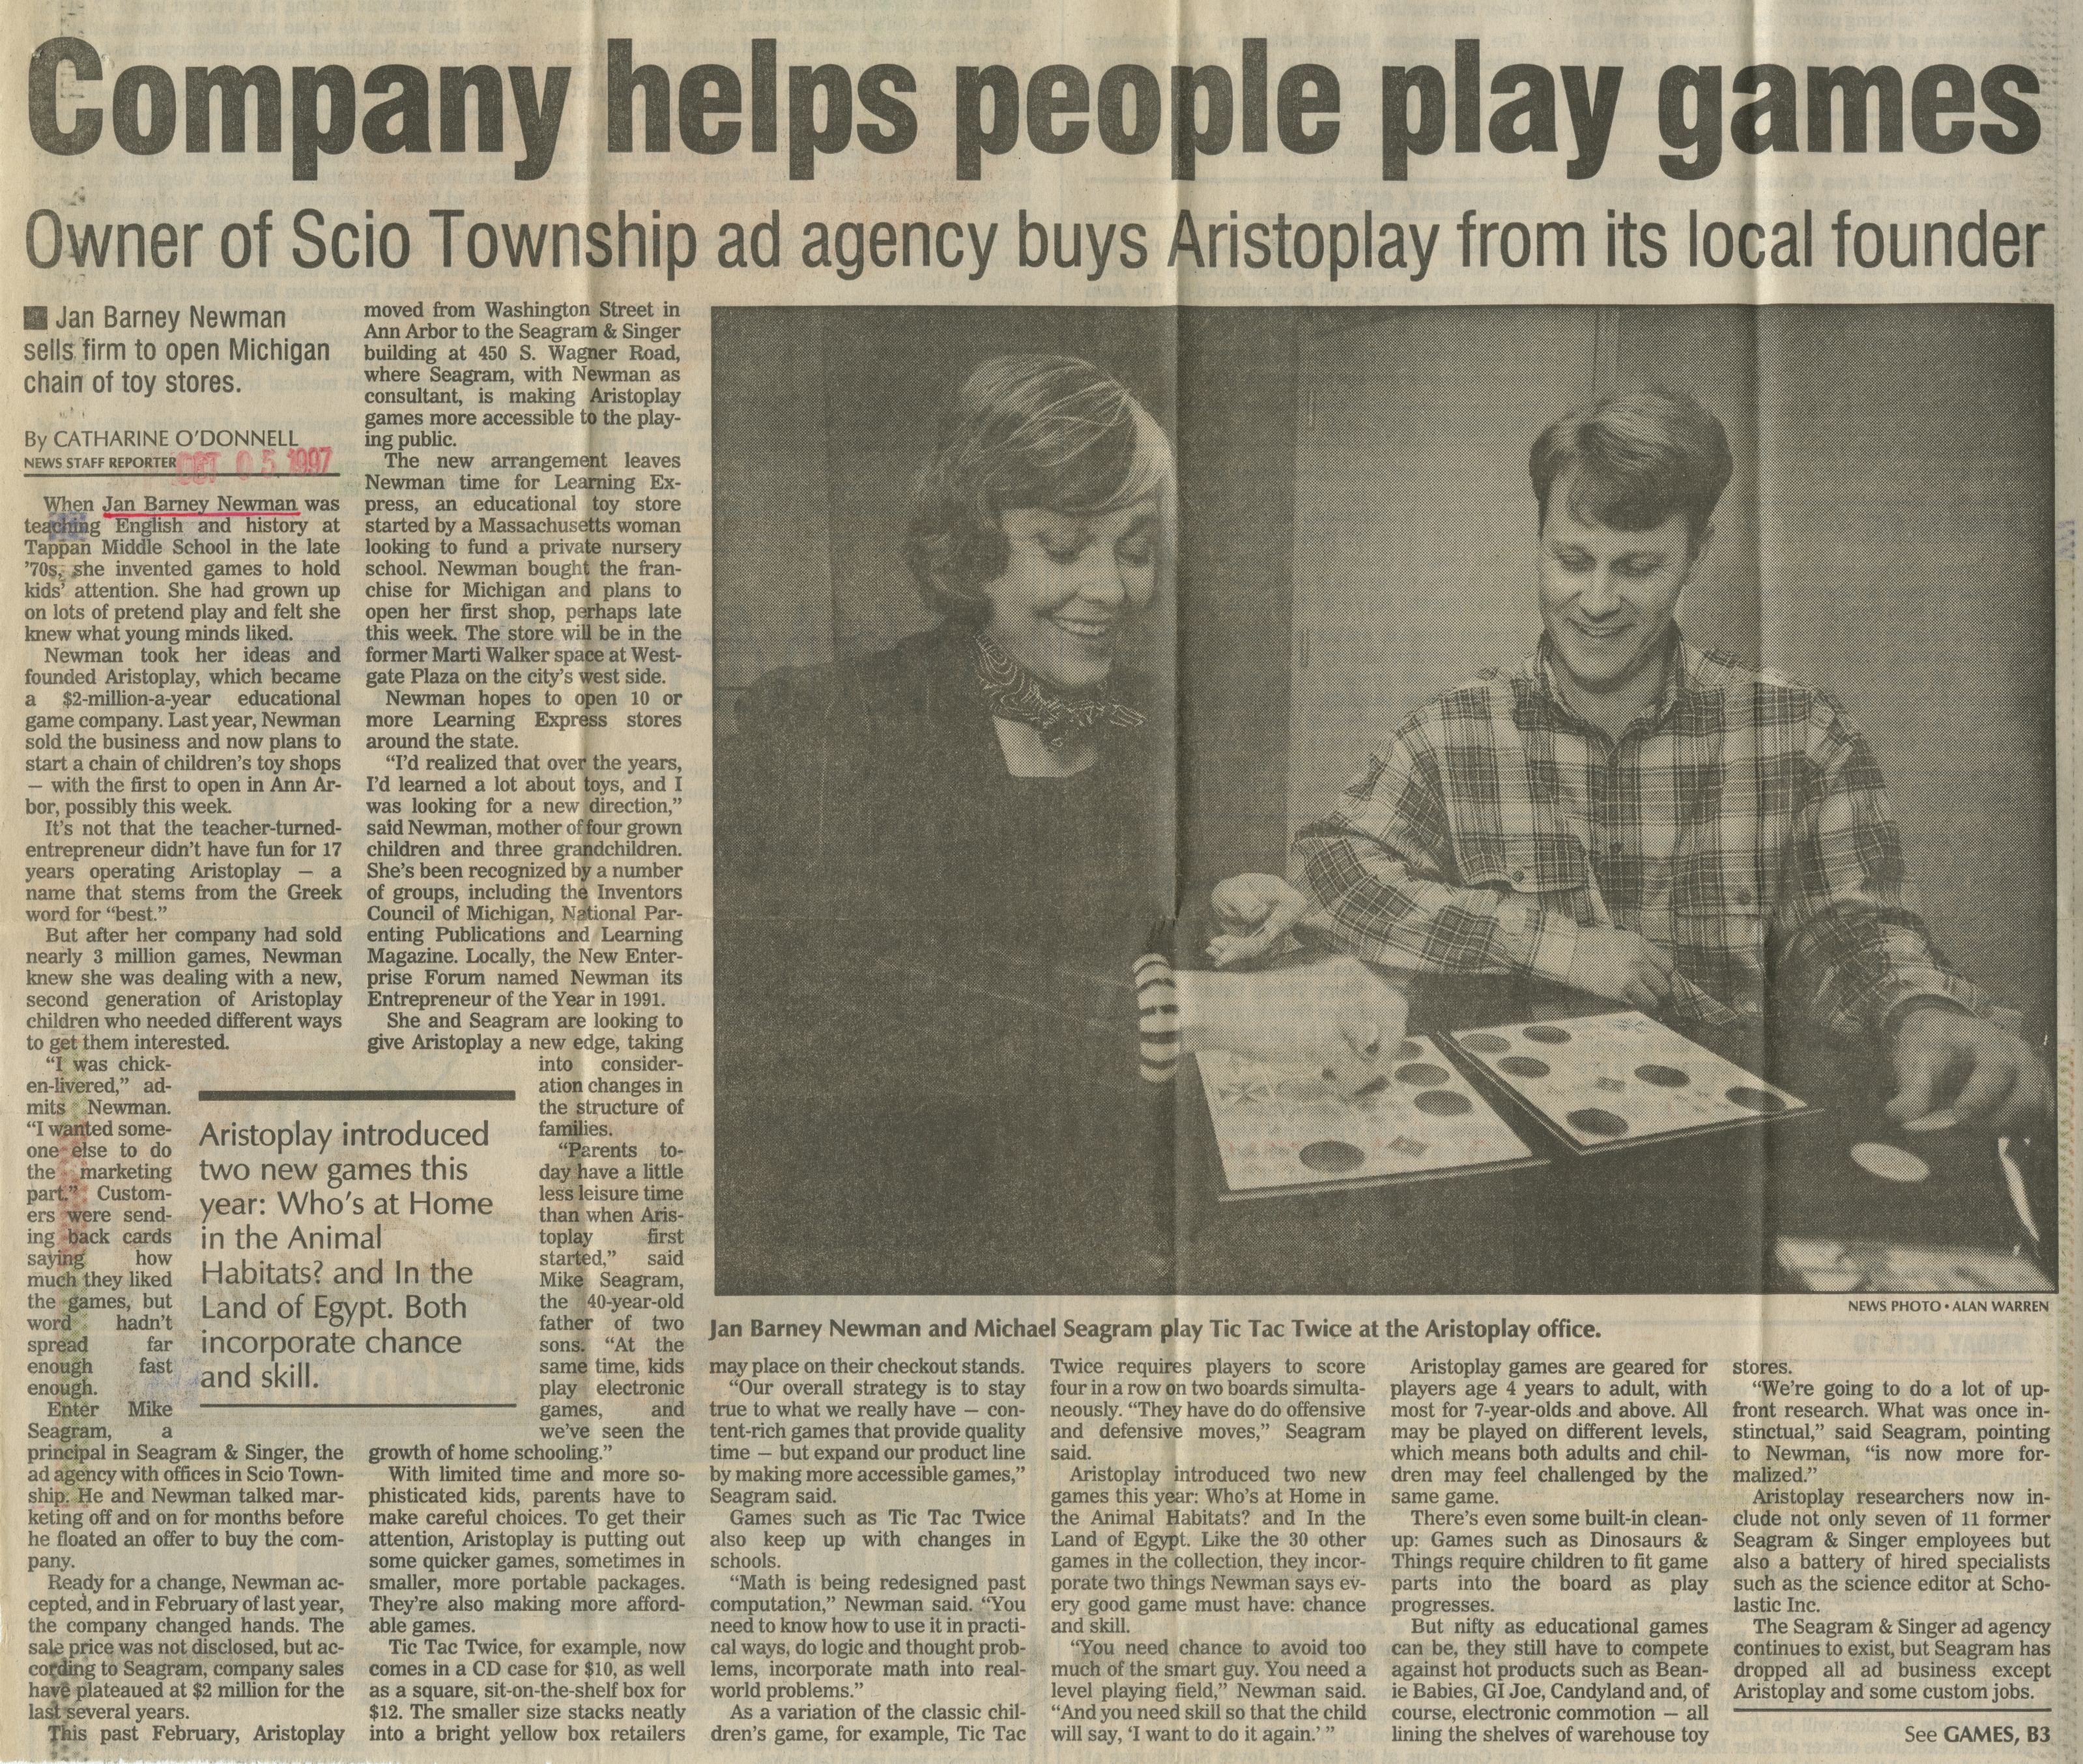 Company helps people play games image